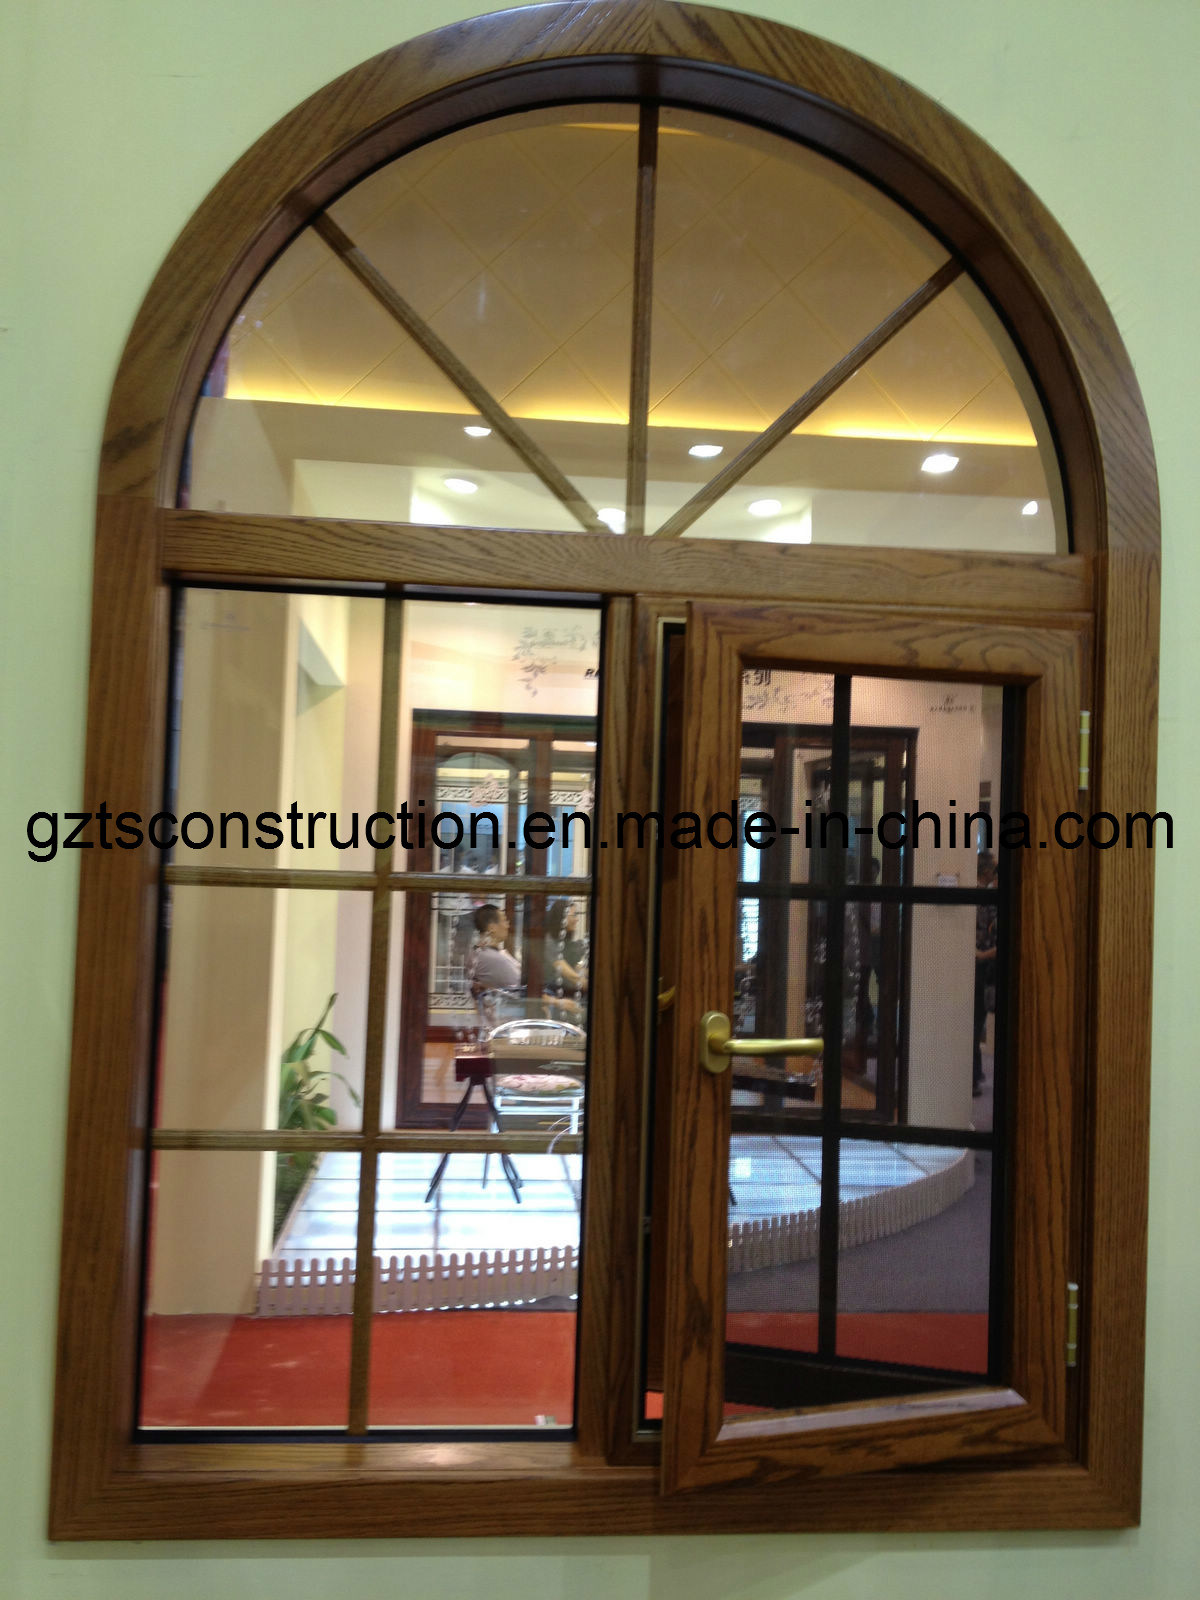 China customized thermal break aluminum windows and doors for Thermal windows prices